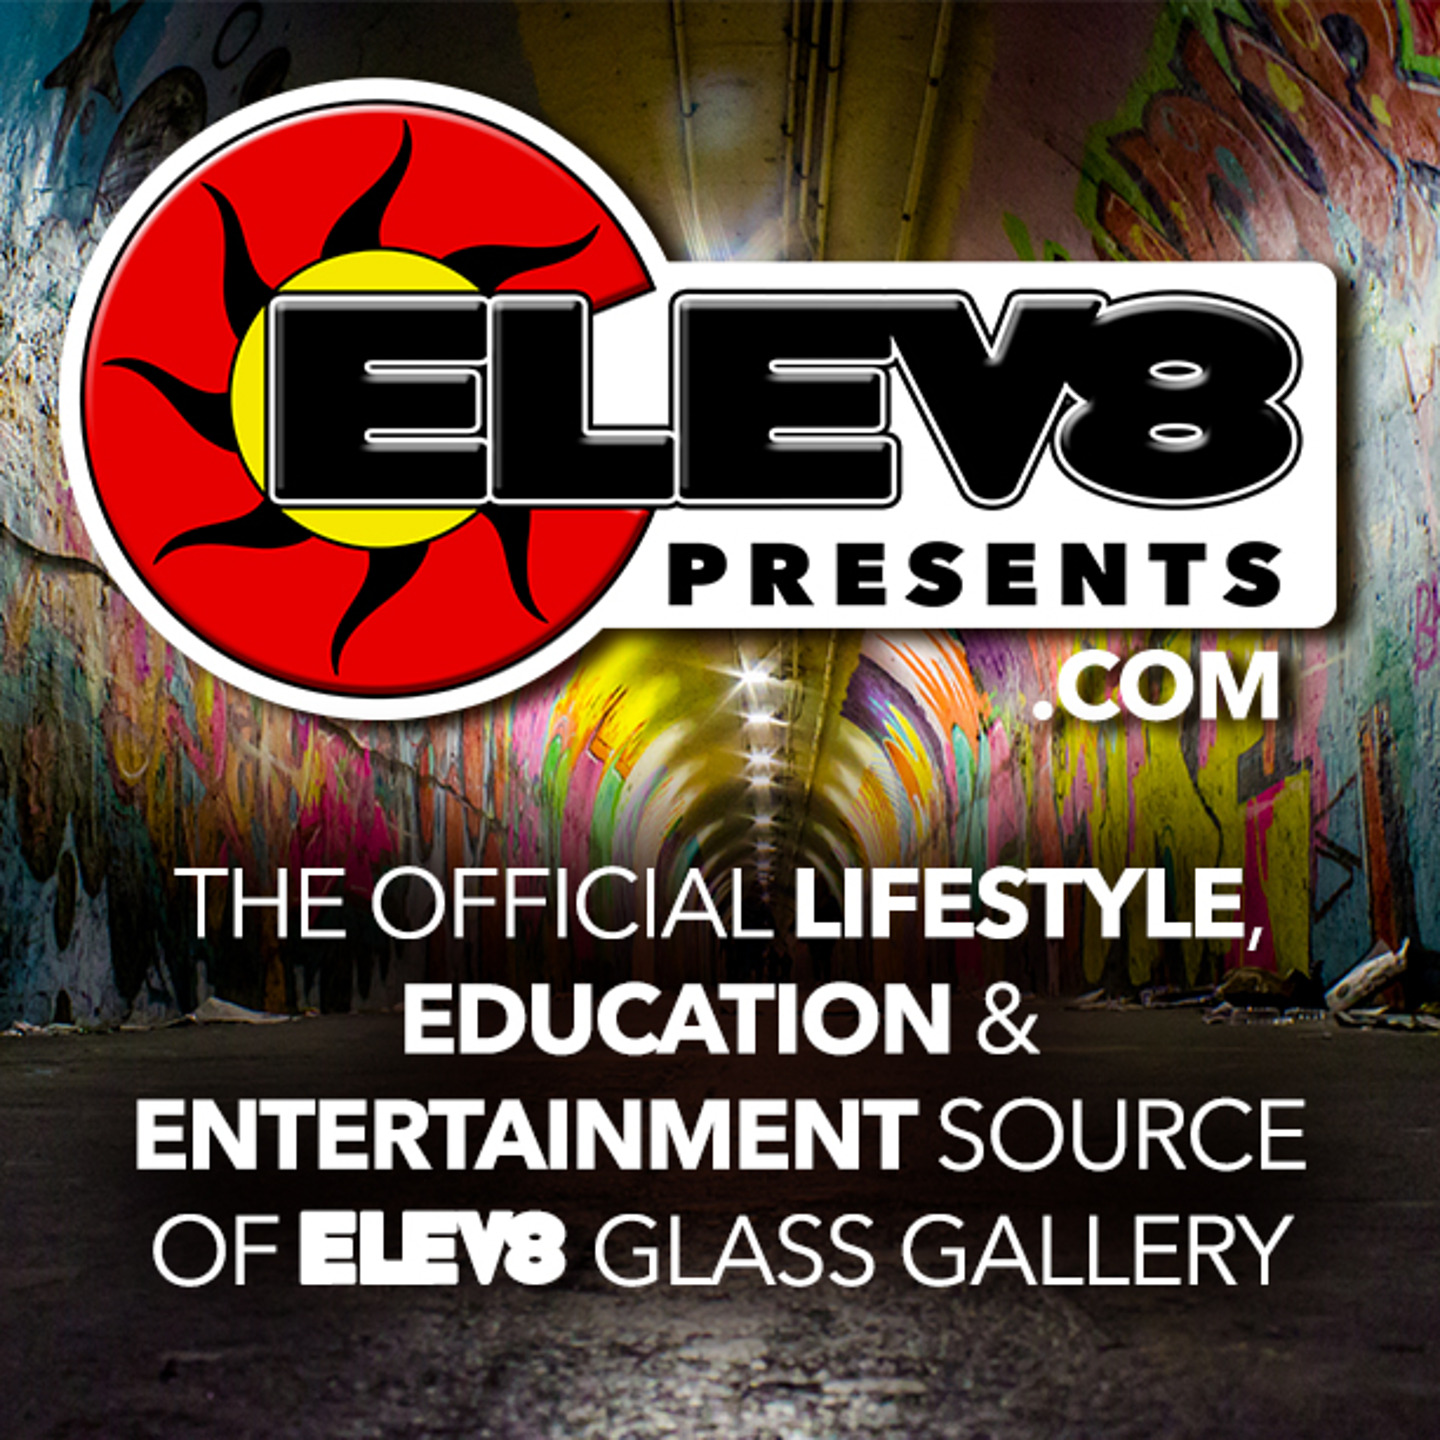 elev8presents-officialsite.jpg